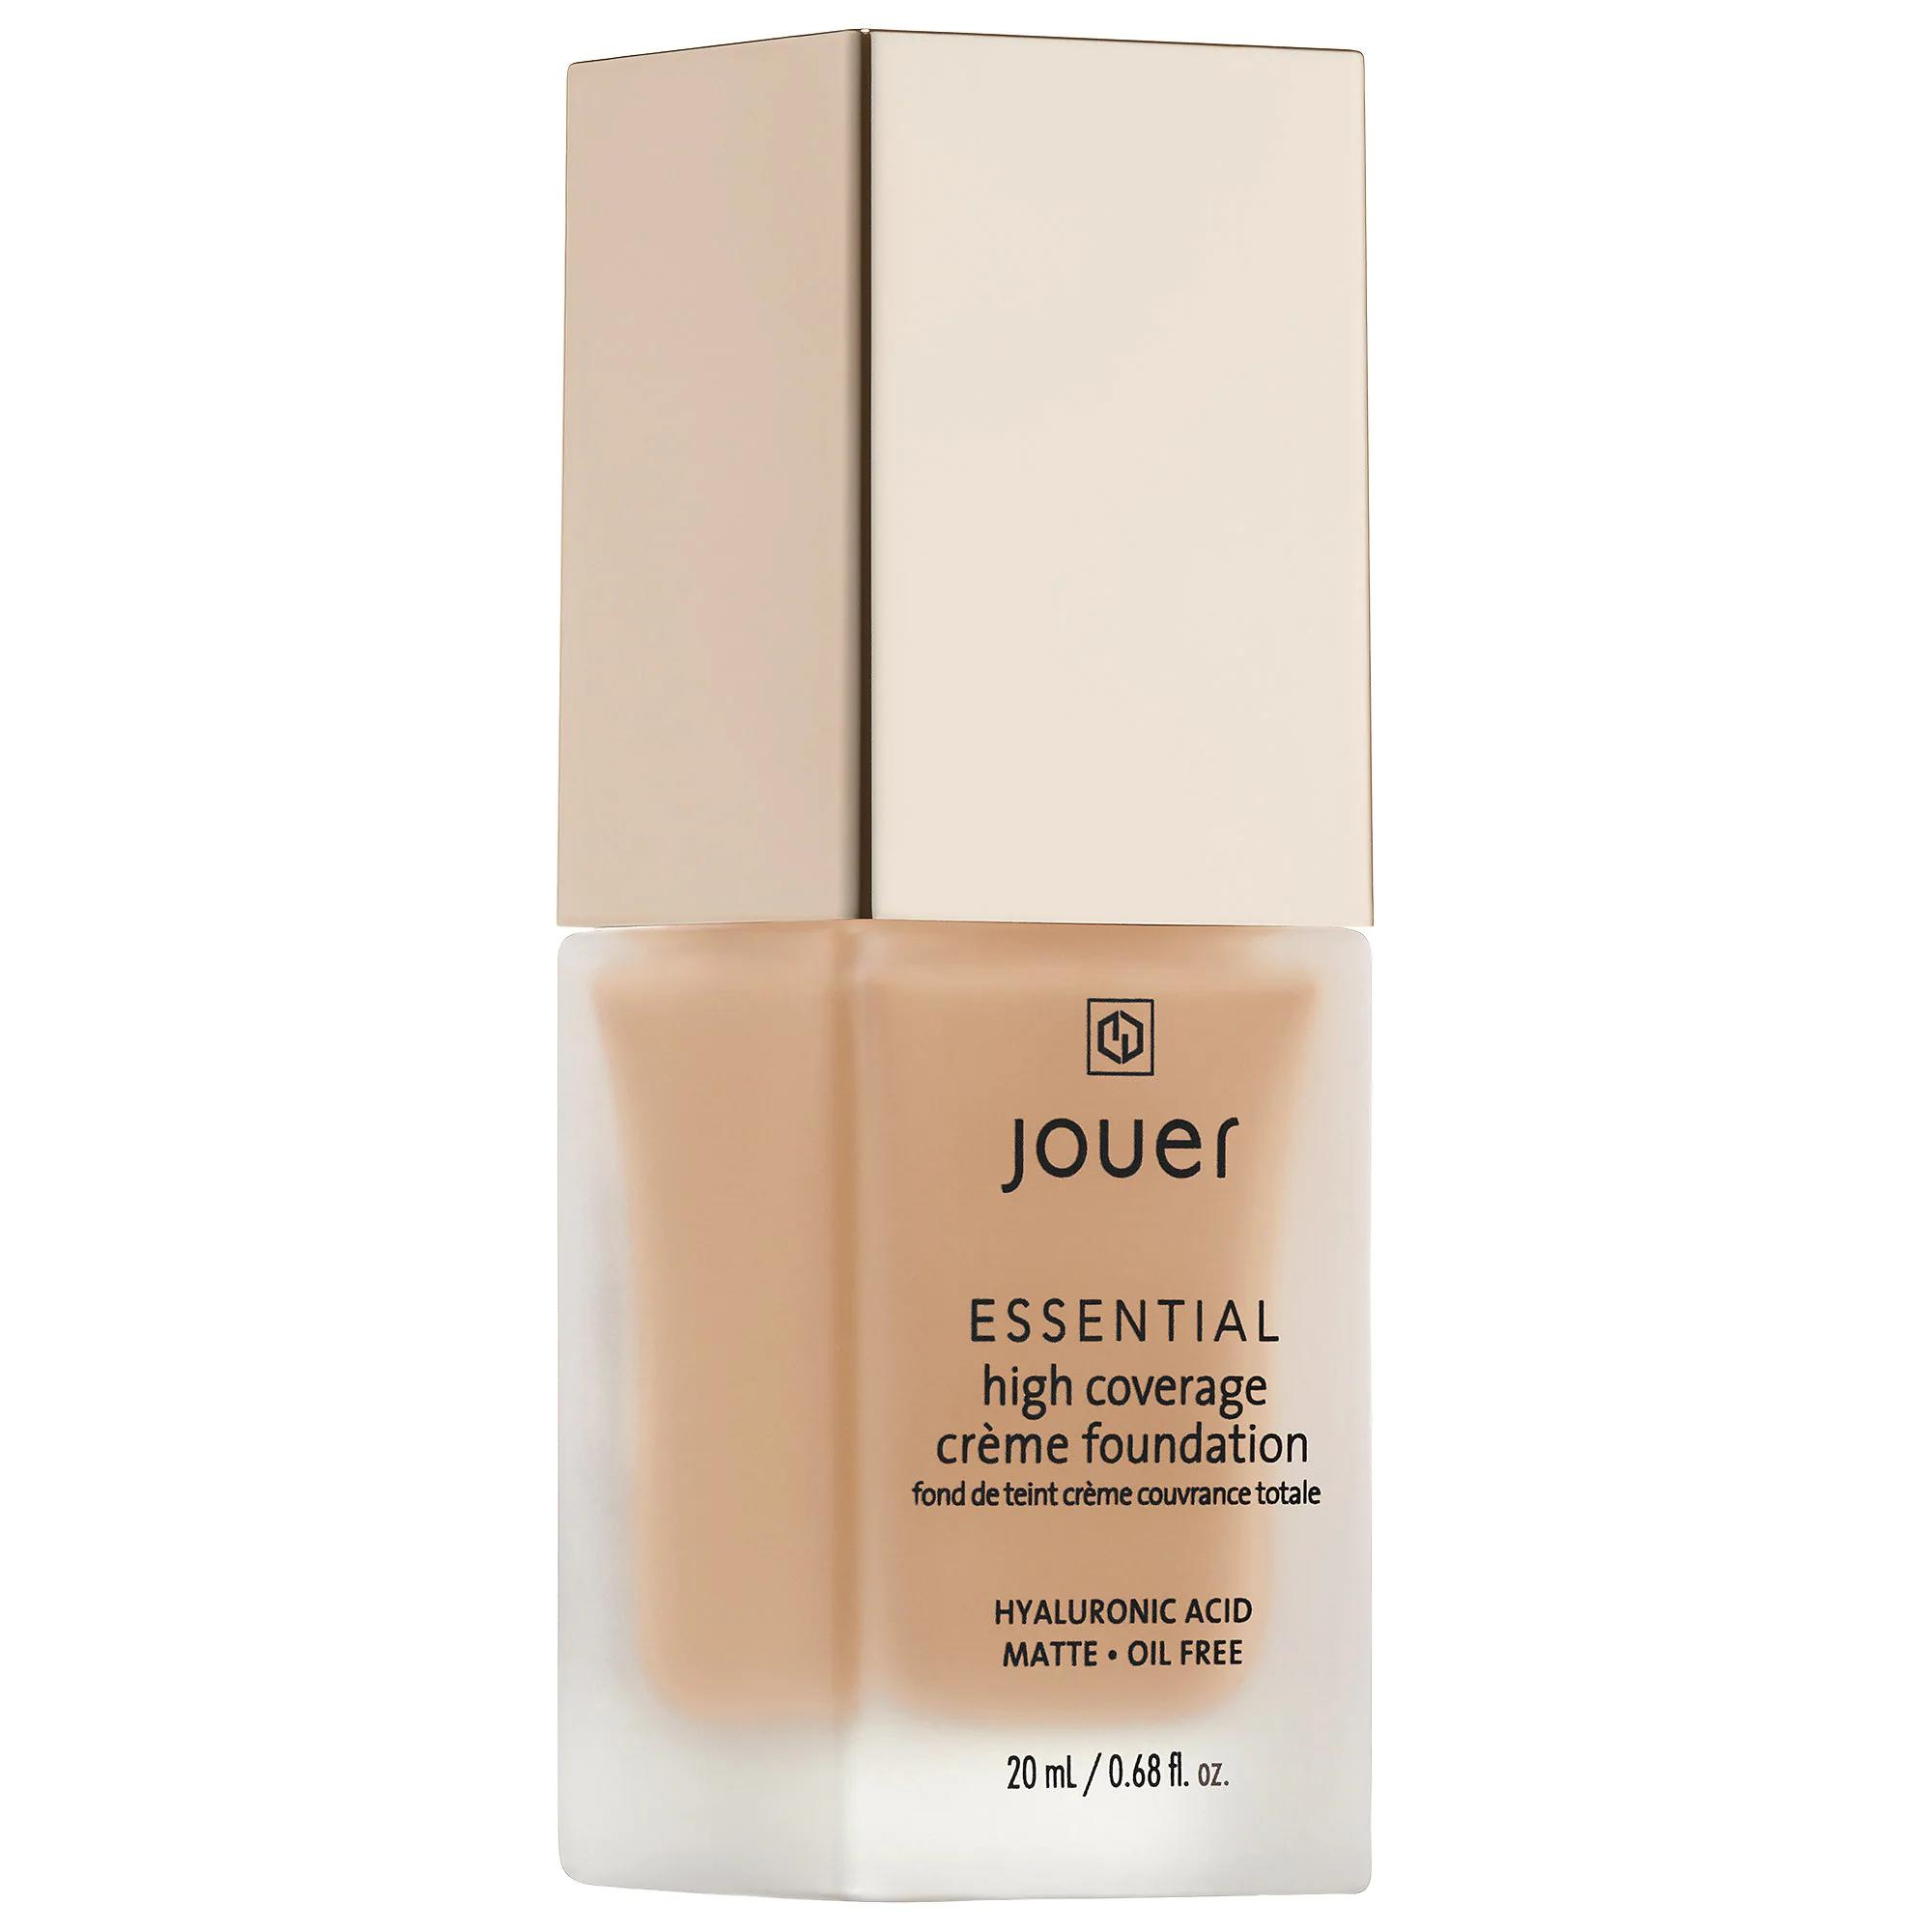 Jouer Essential High Coverage Creme Foundation Latte